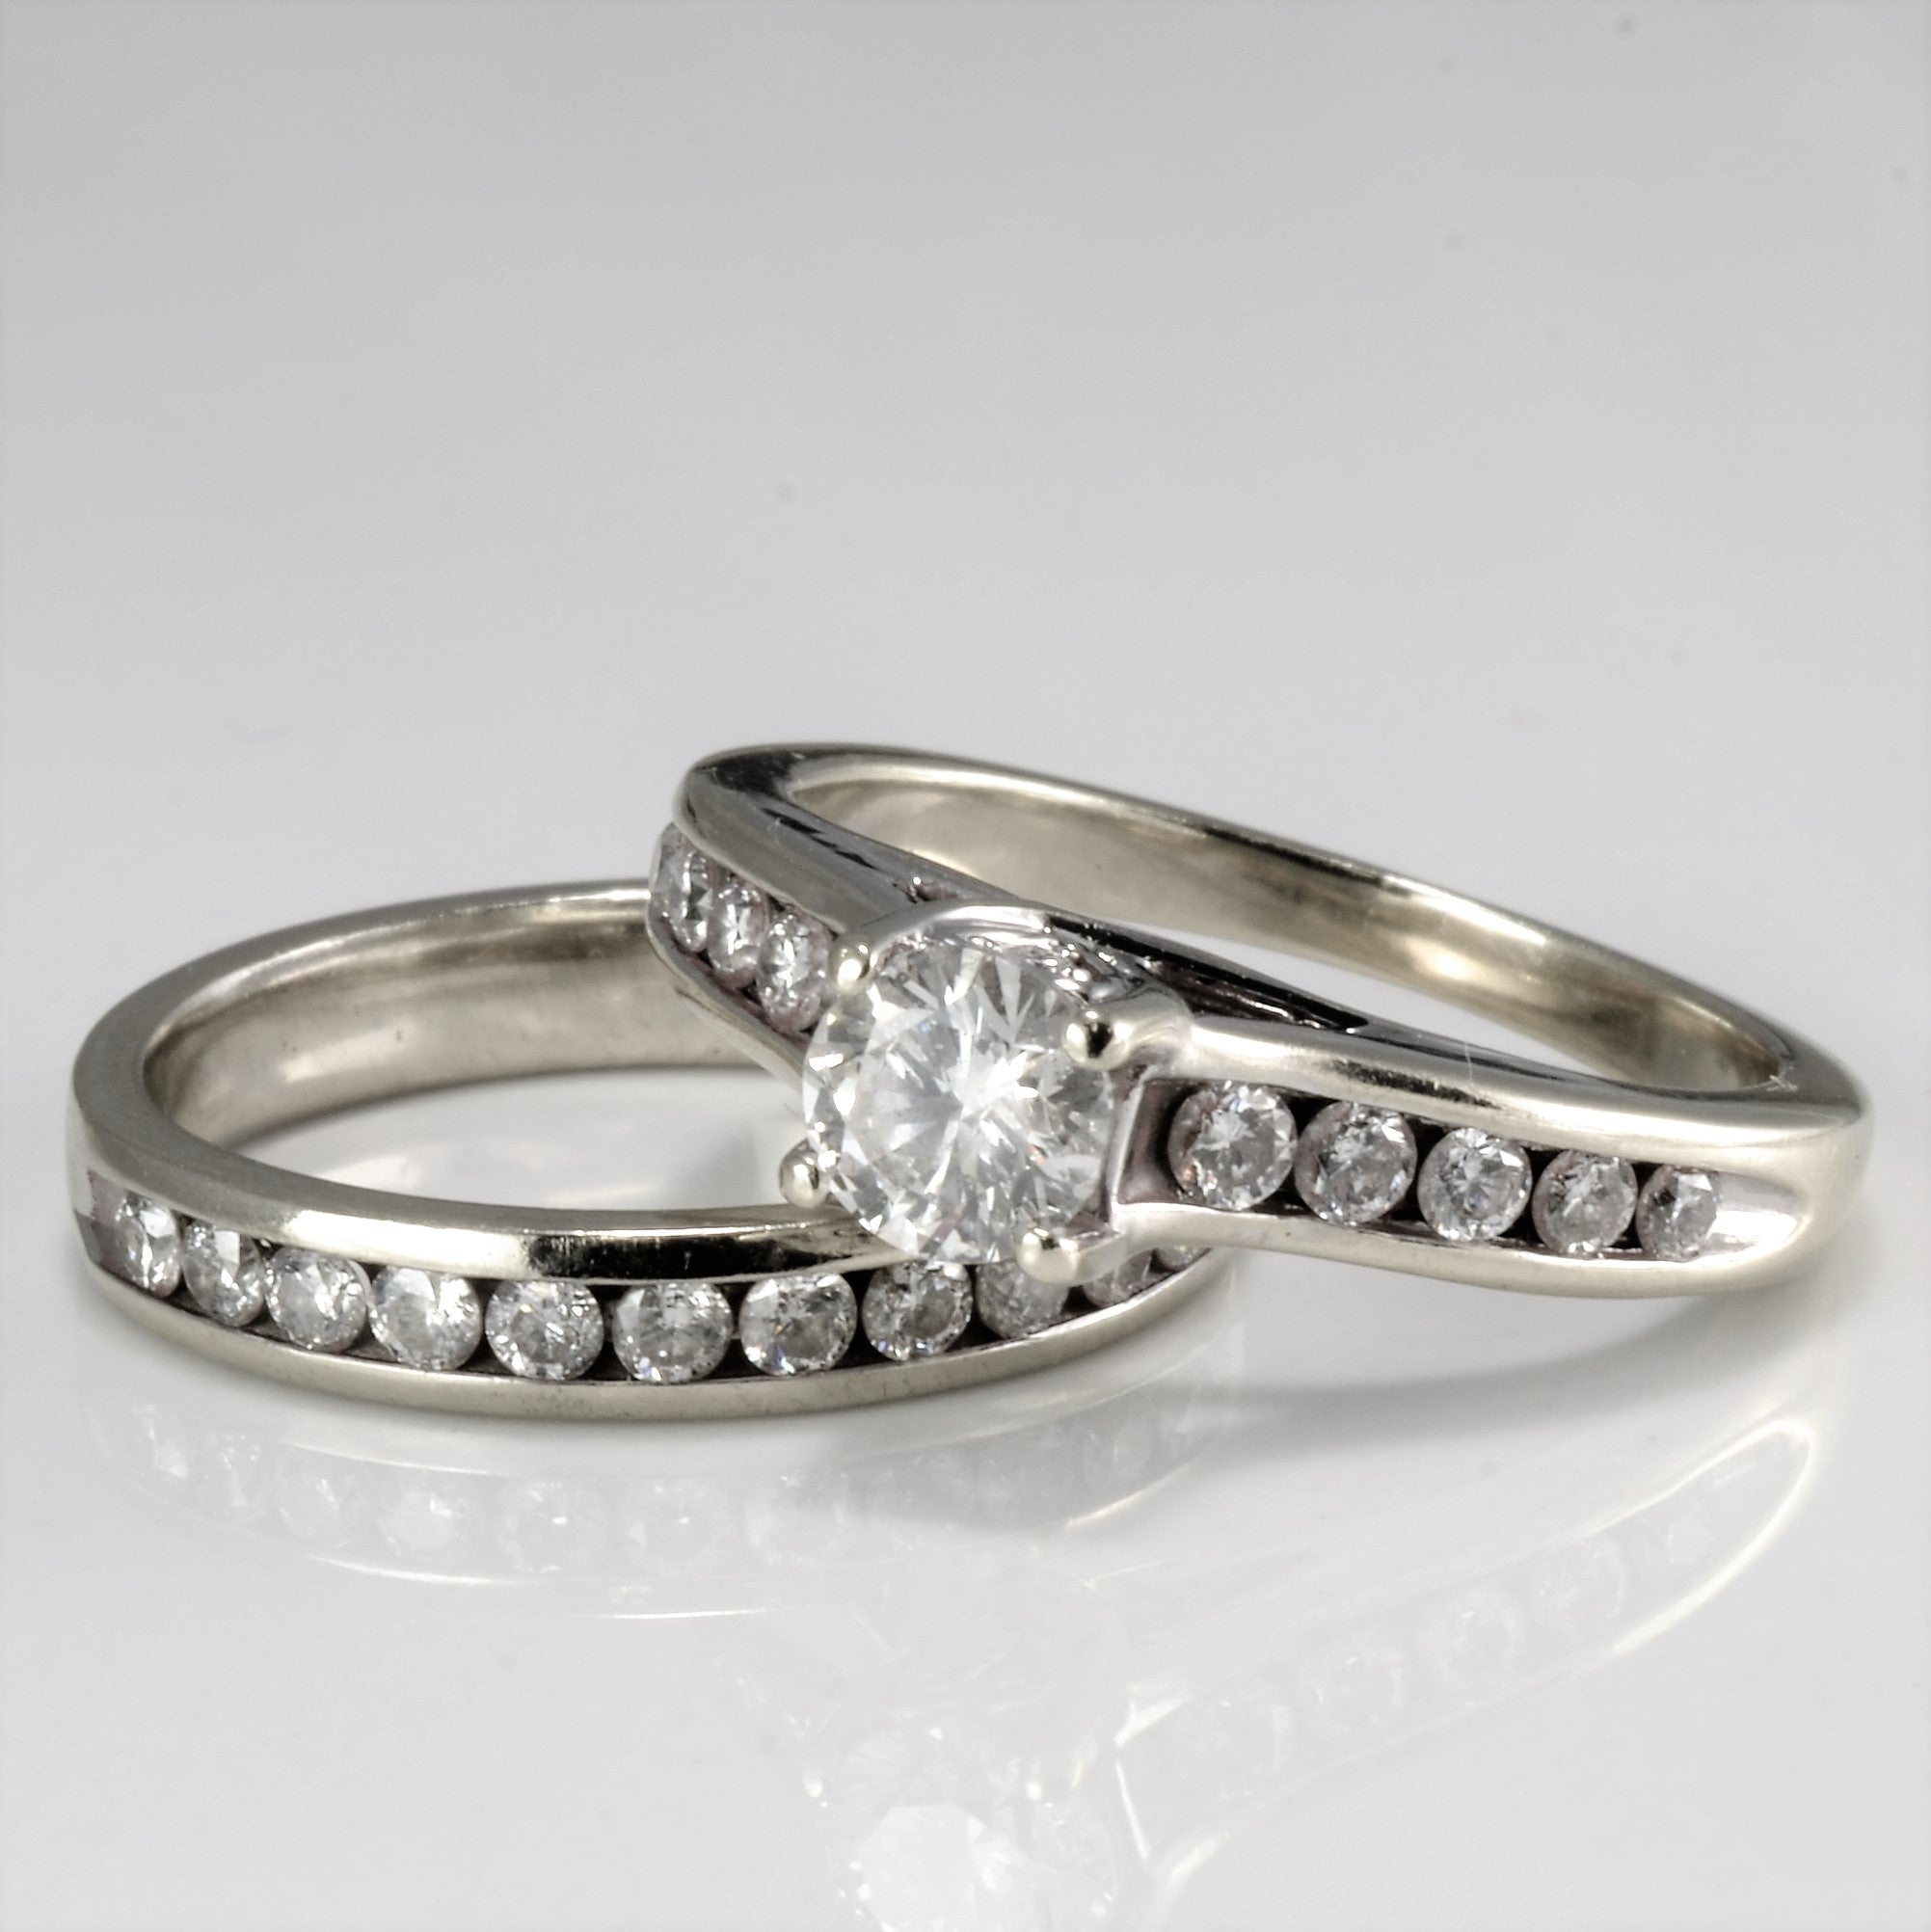 Channel Diamond Ladies Wedding Ring Set | 0.85 ctw, SZ 5.5 |